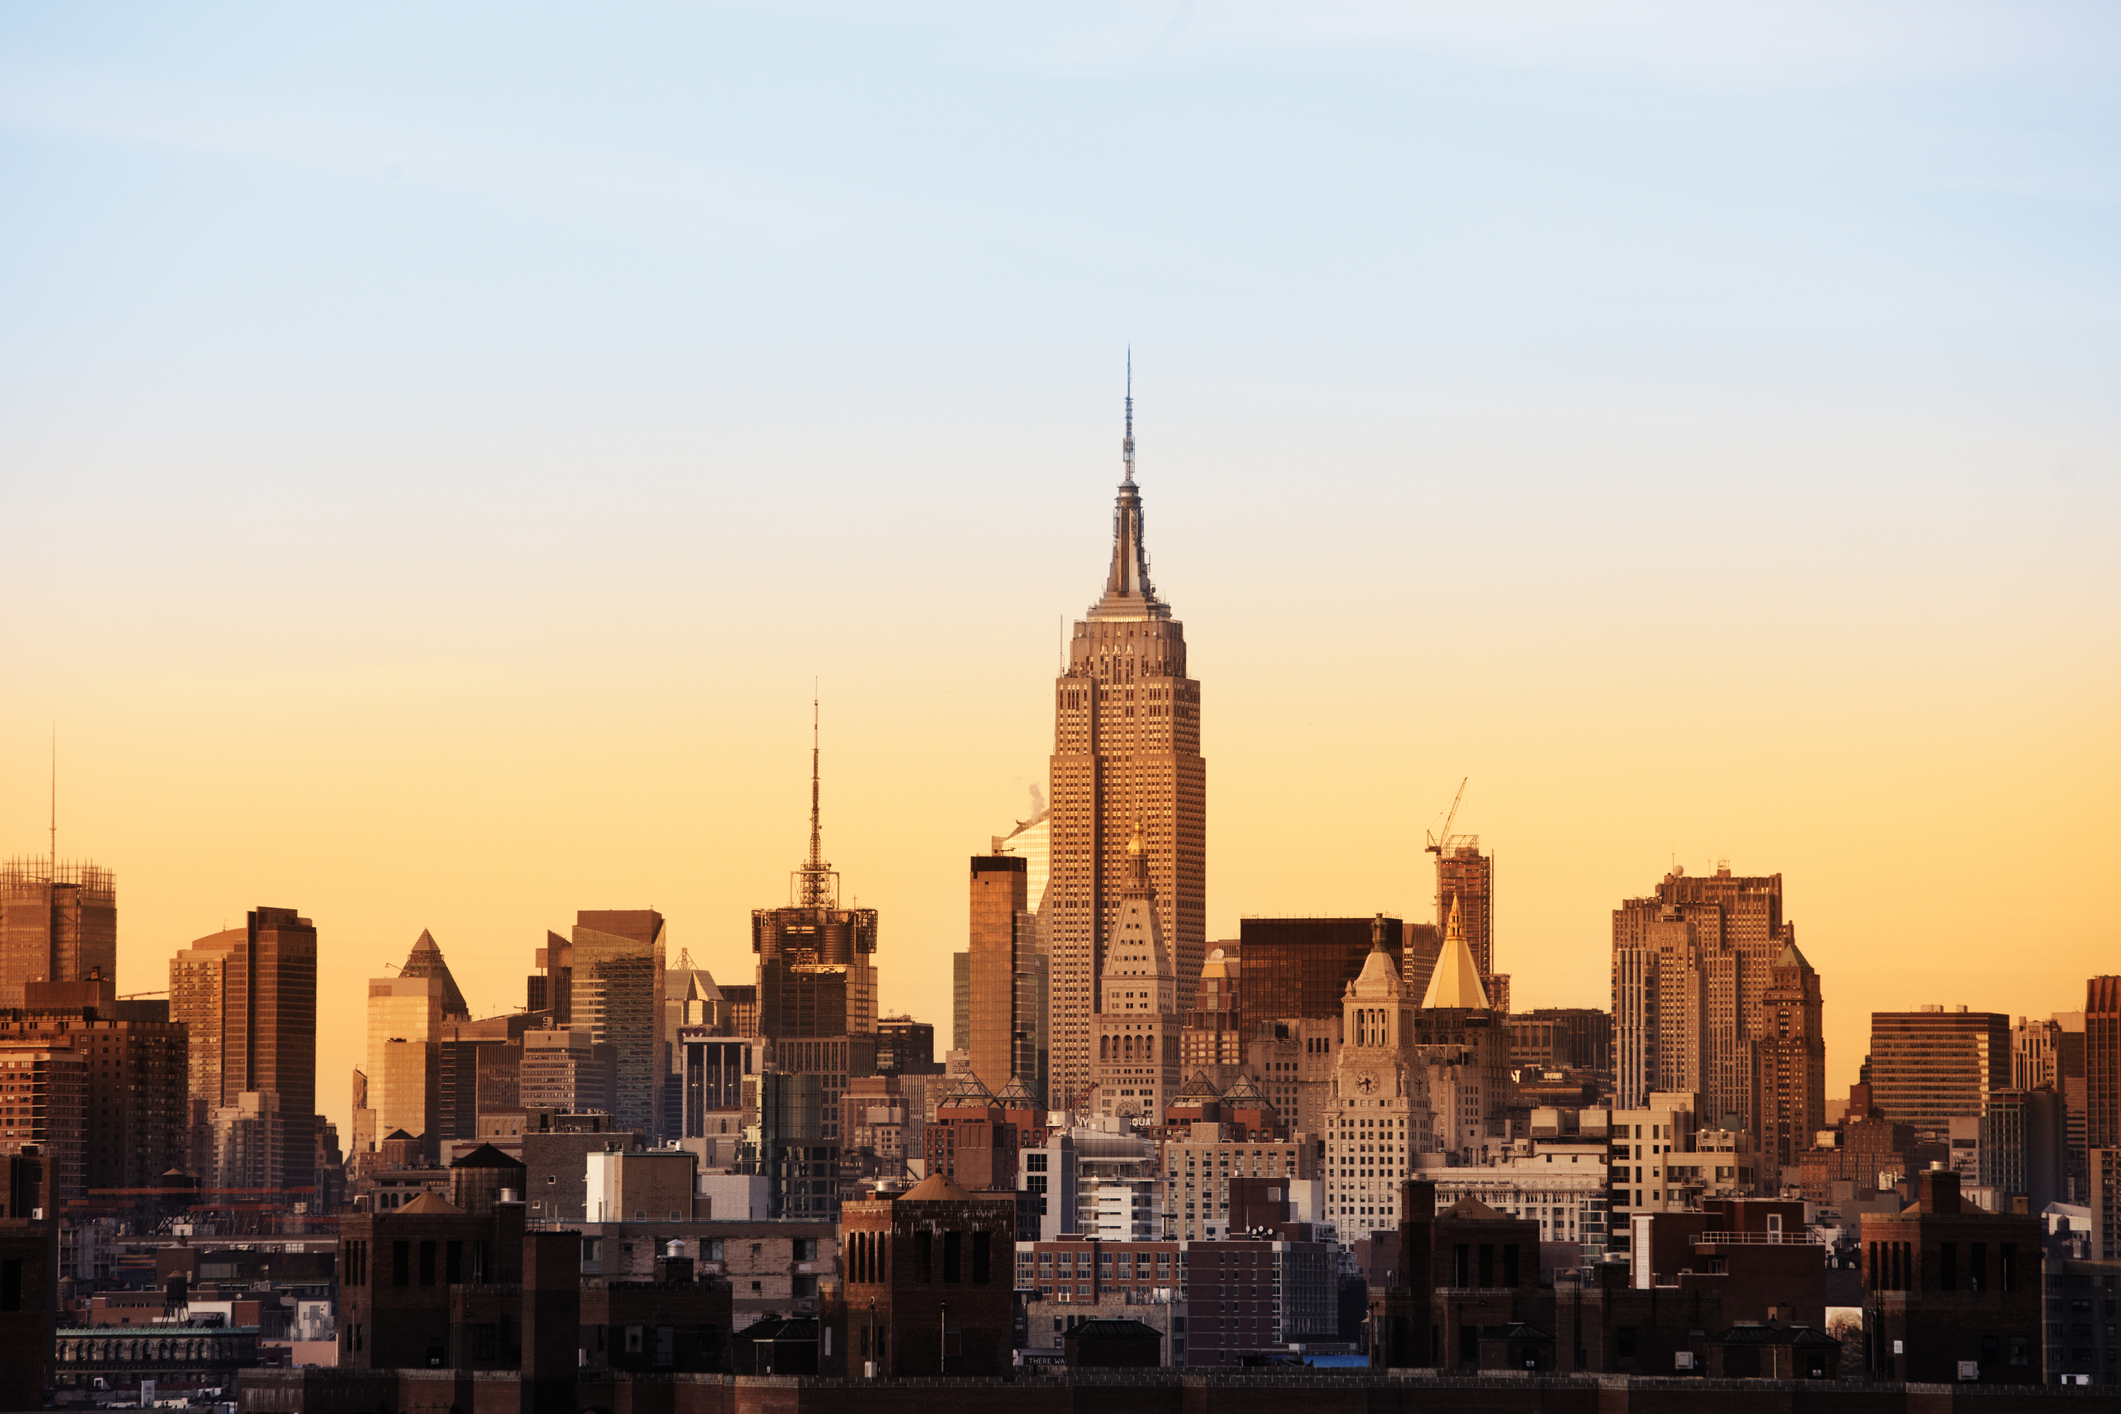 TechHub's new NYC site brings London startups Revolut, Aire, Cronofy, Callsign